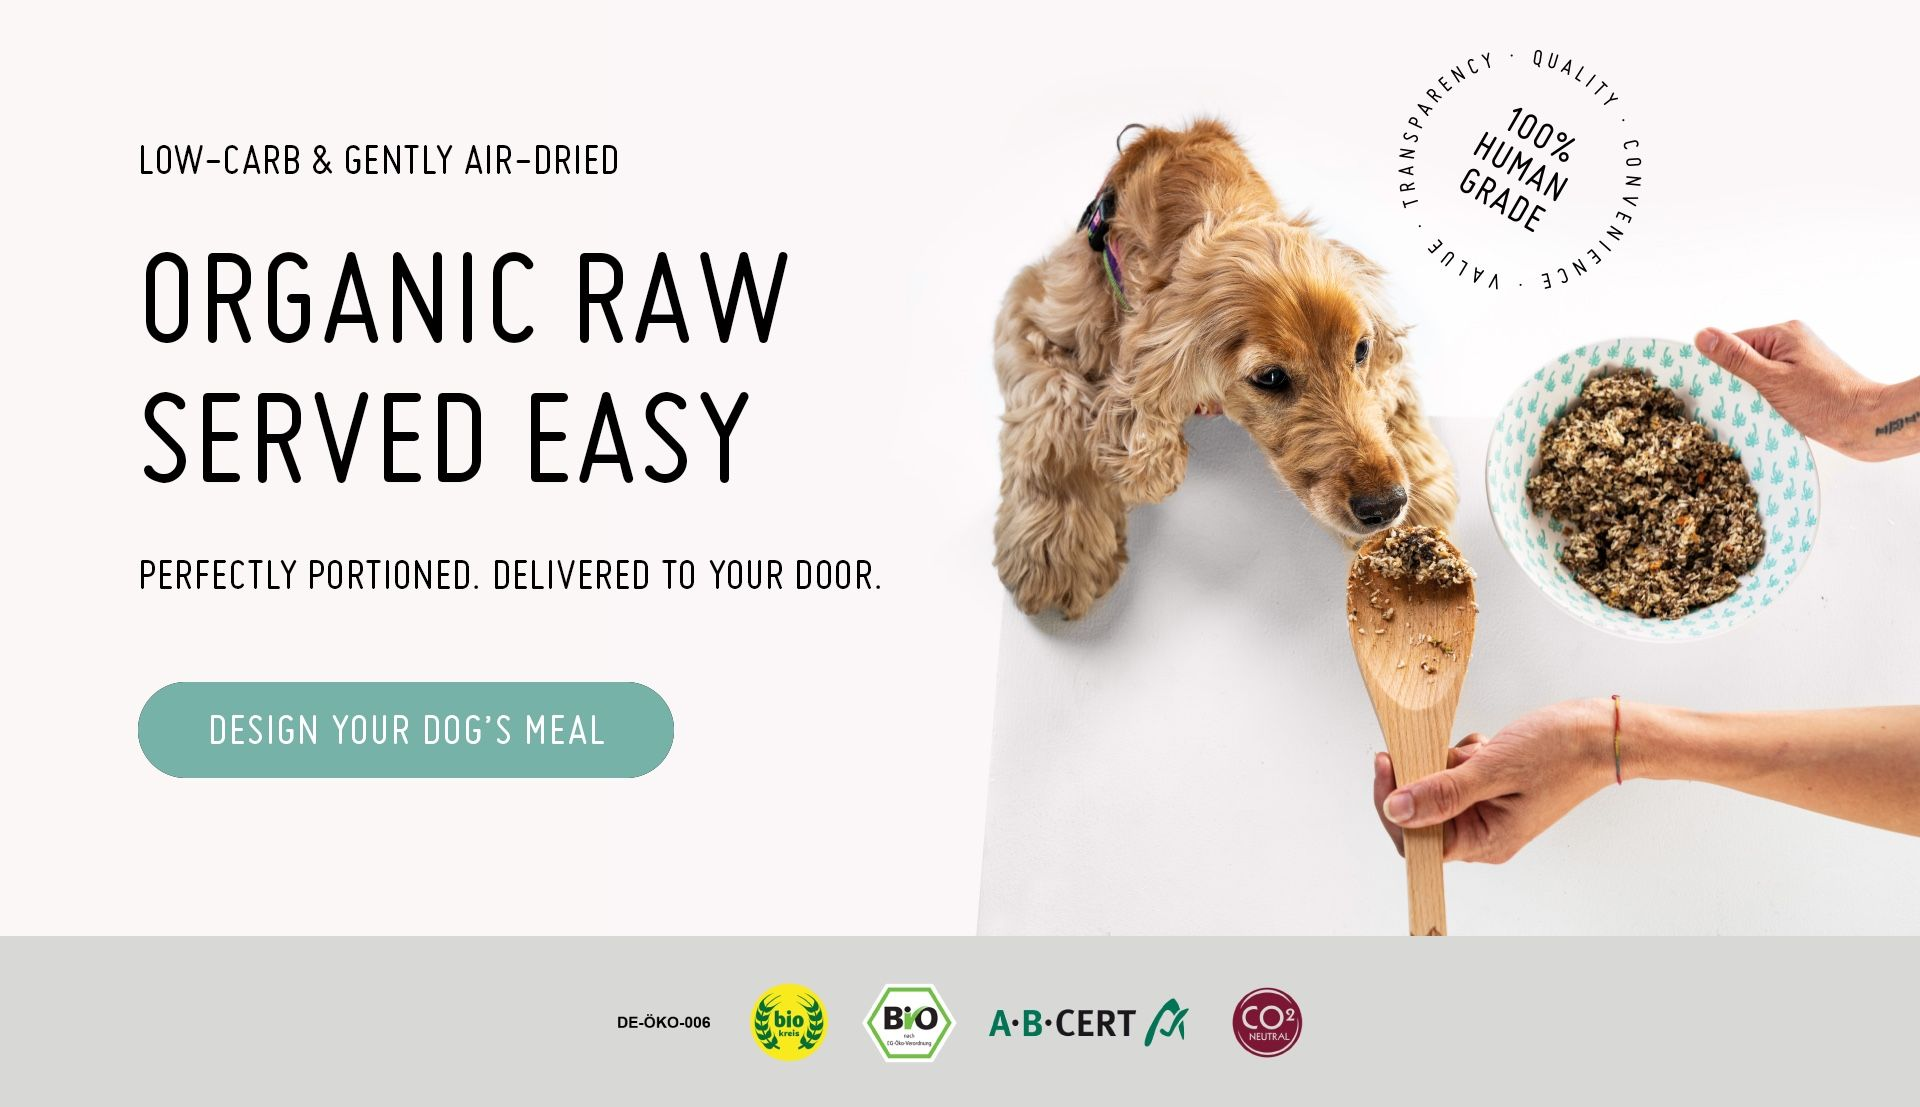 Raw, organic & low-carb dog food DYI delivered   Cool Shit